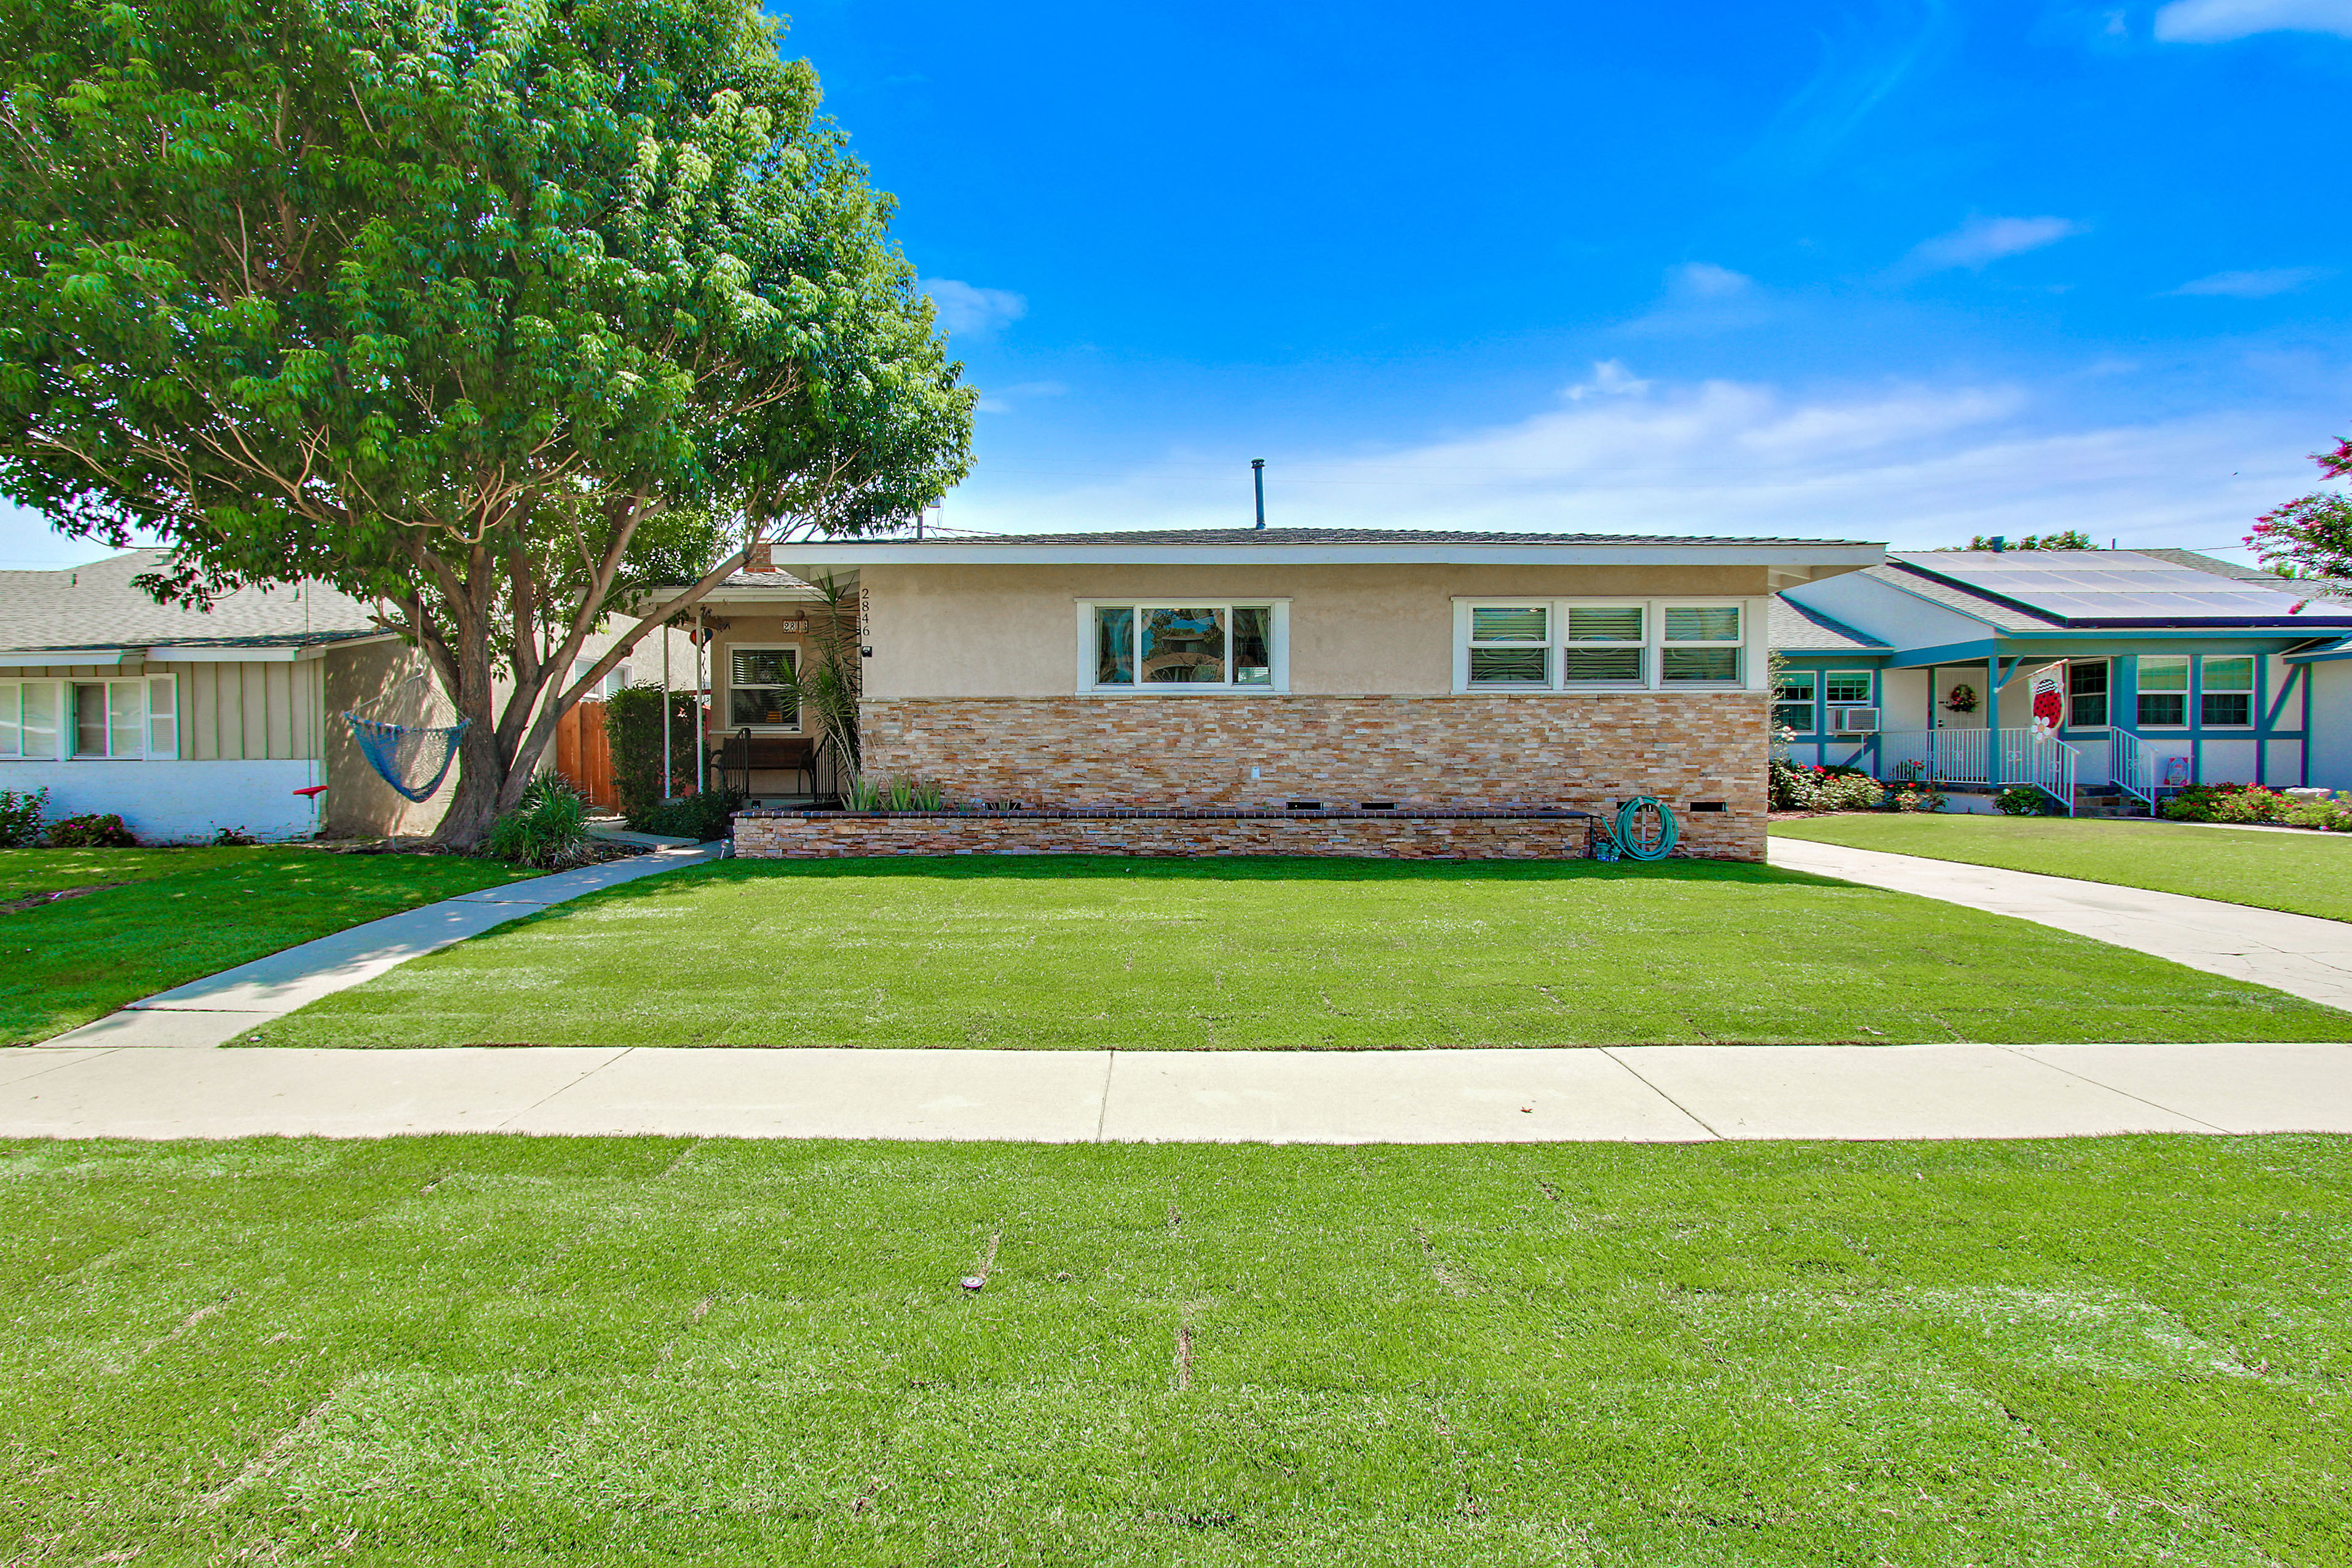 2846 Ladoga Avenue, Long Beach CA